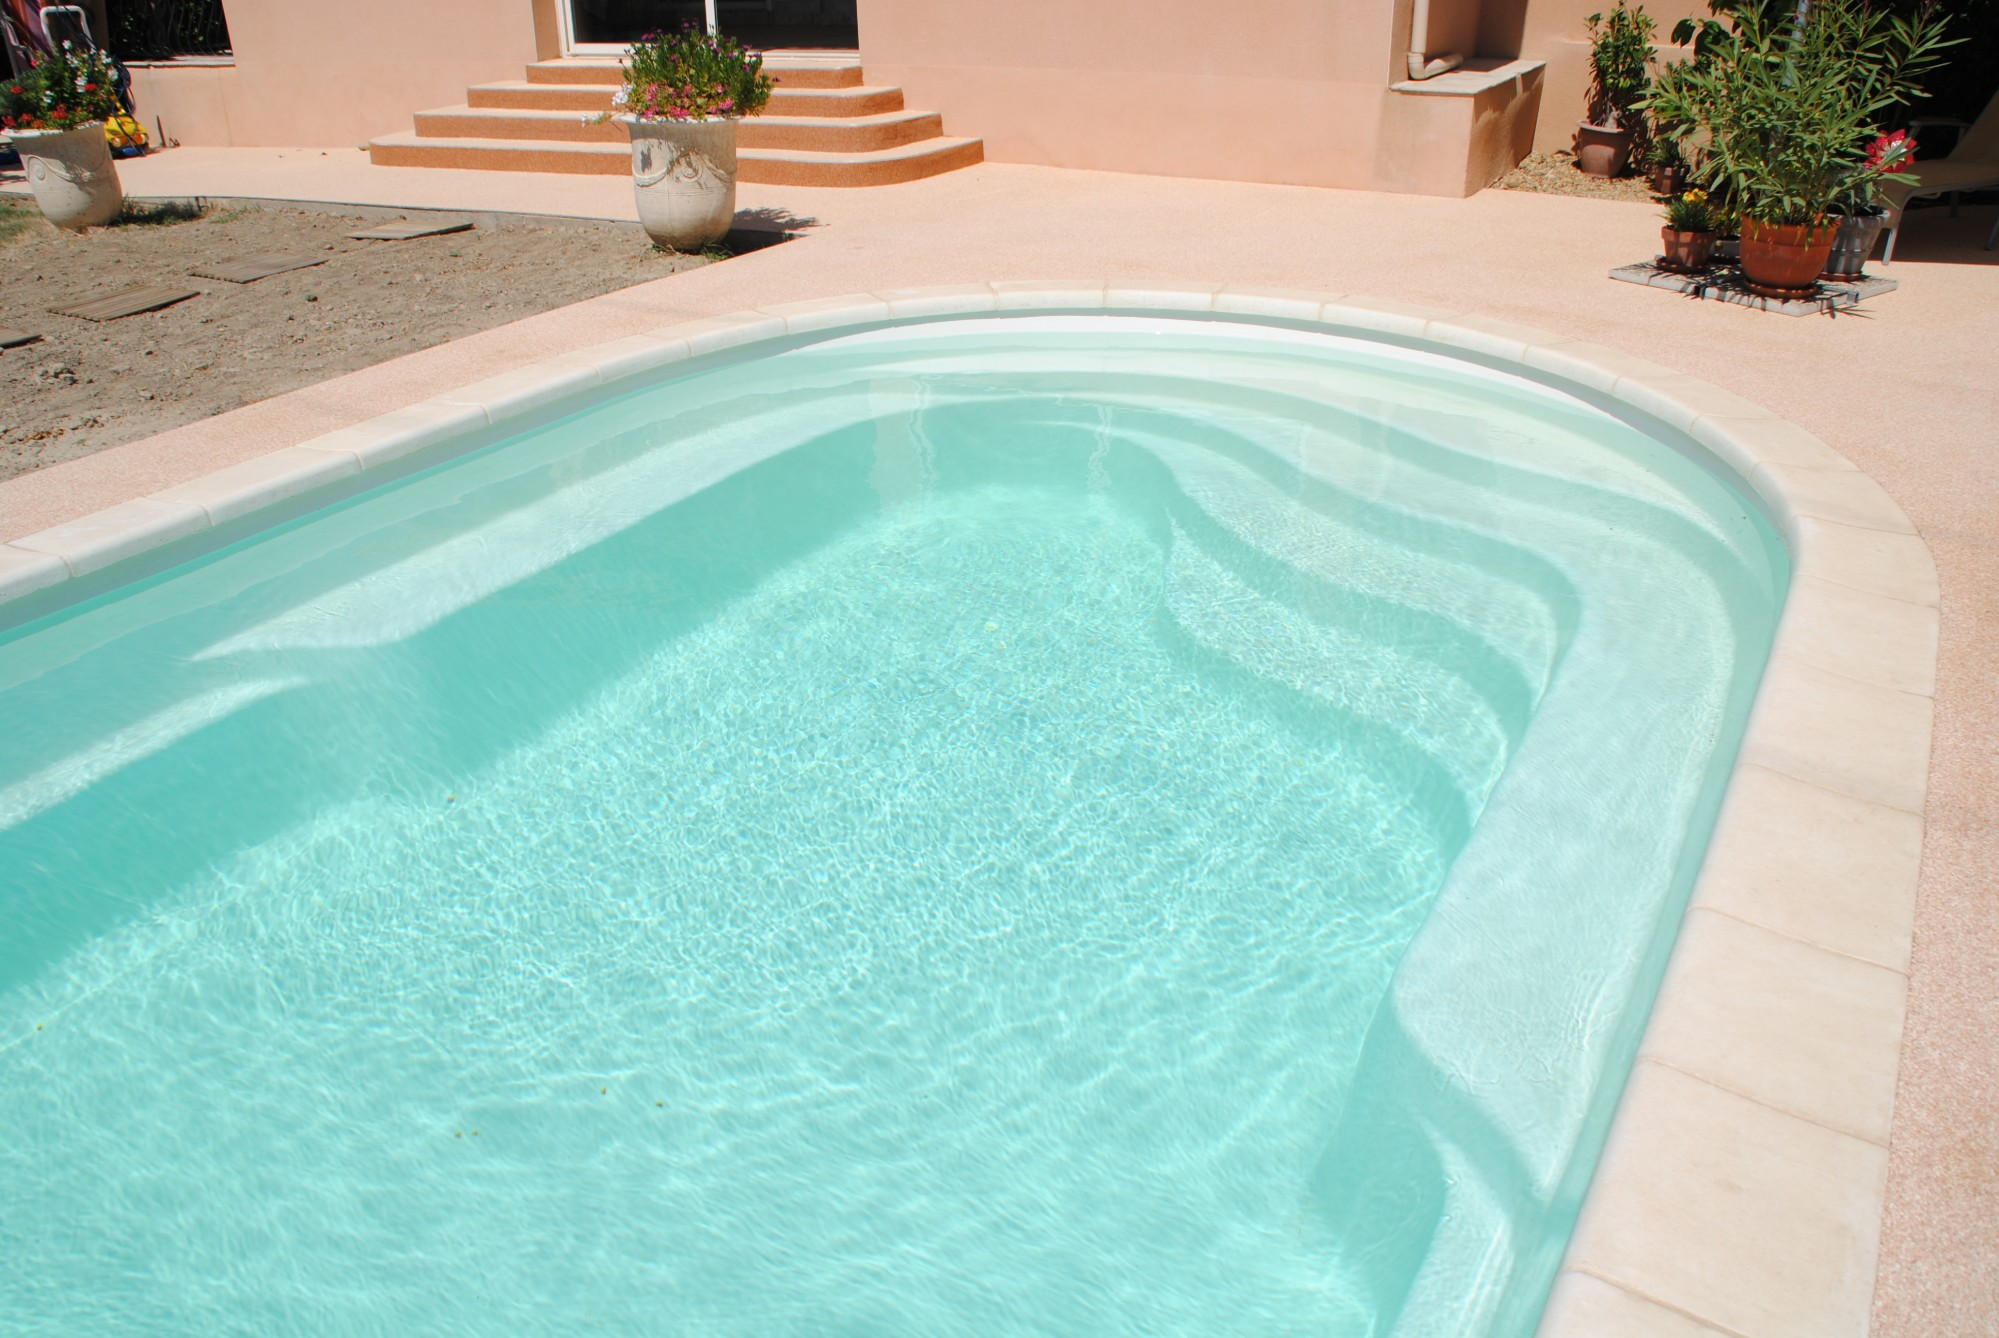 Piscine coque polyester avec banquette modele axeo 700 bf for Piscine polyester